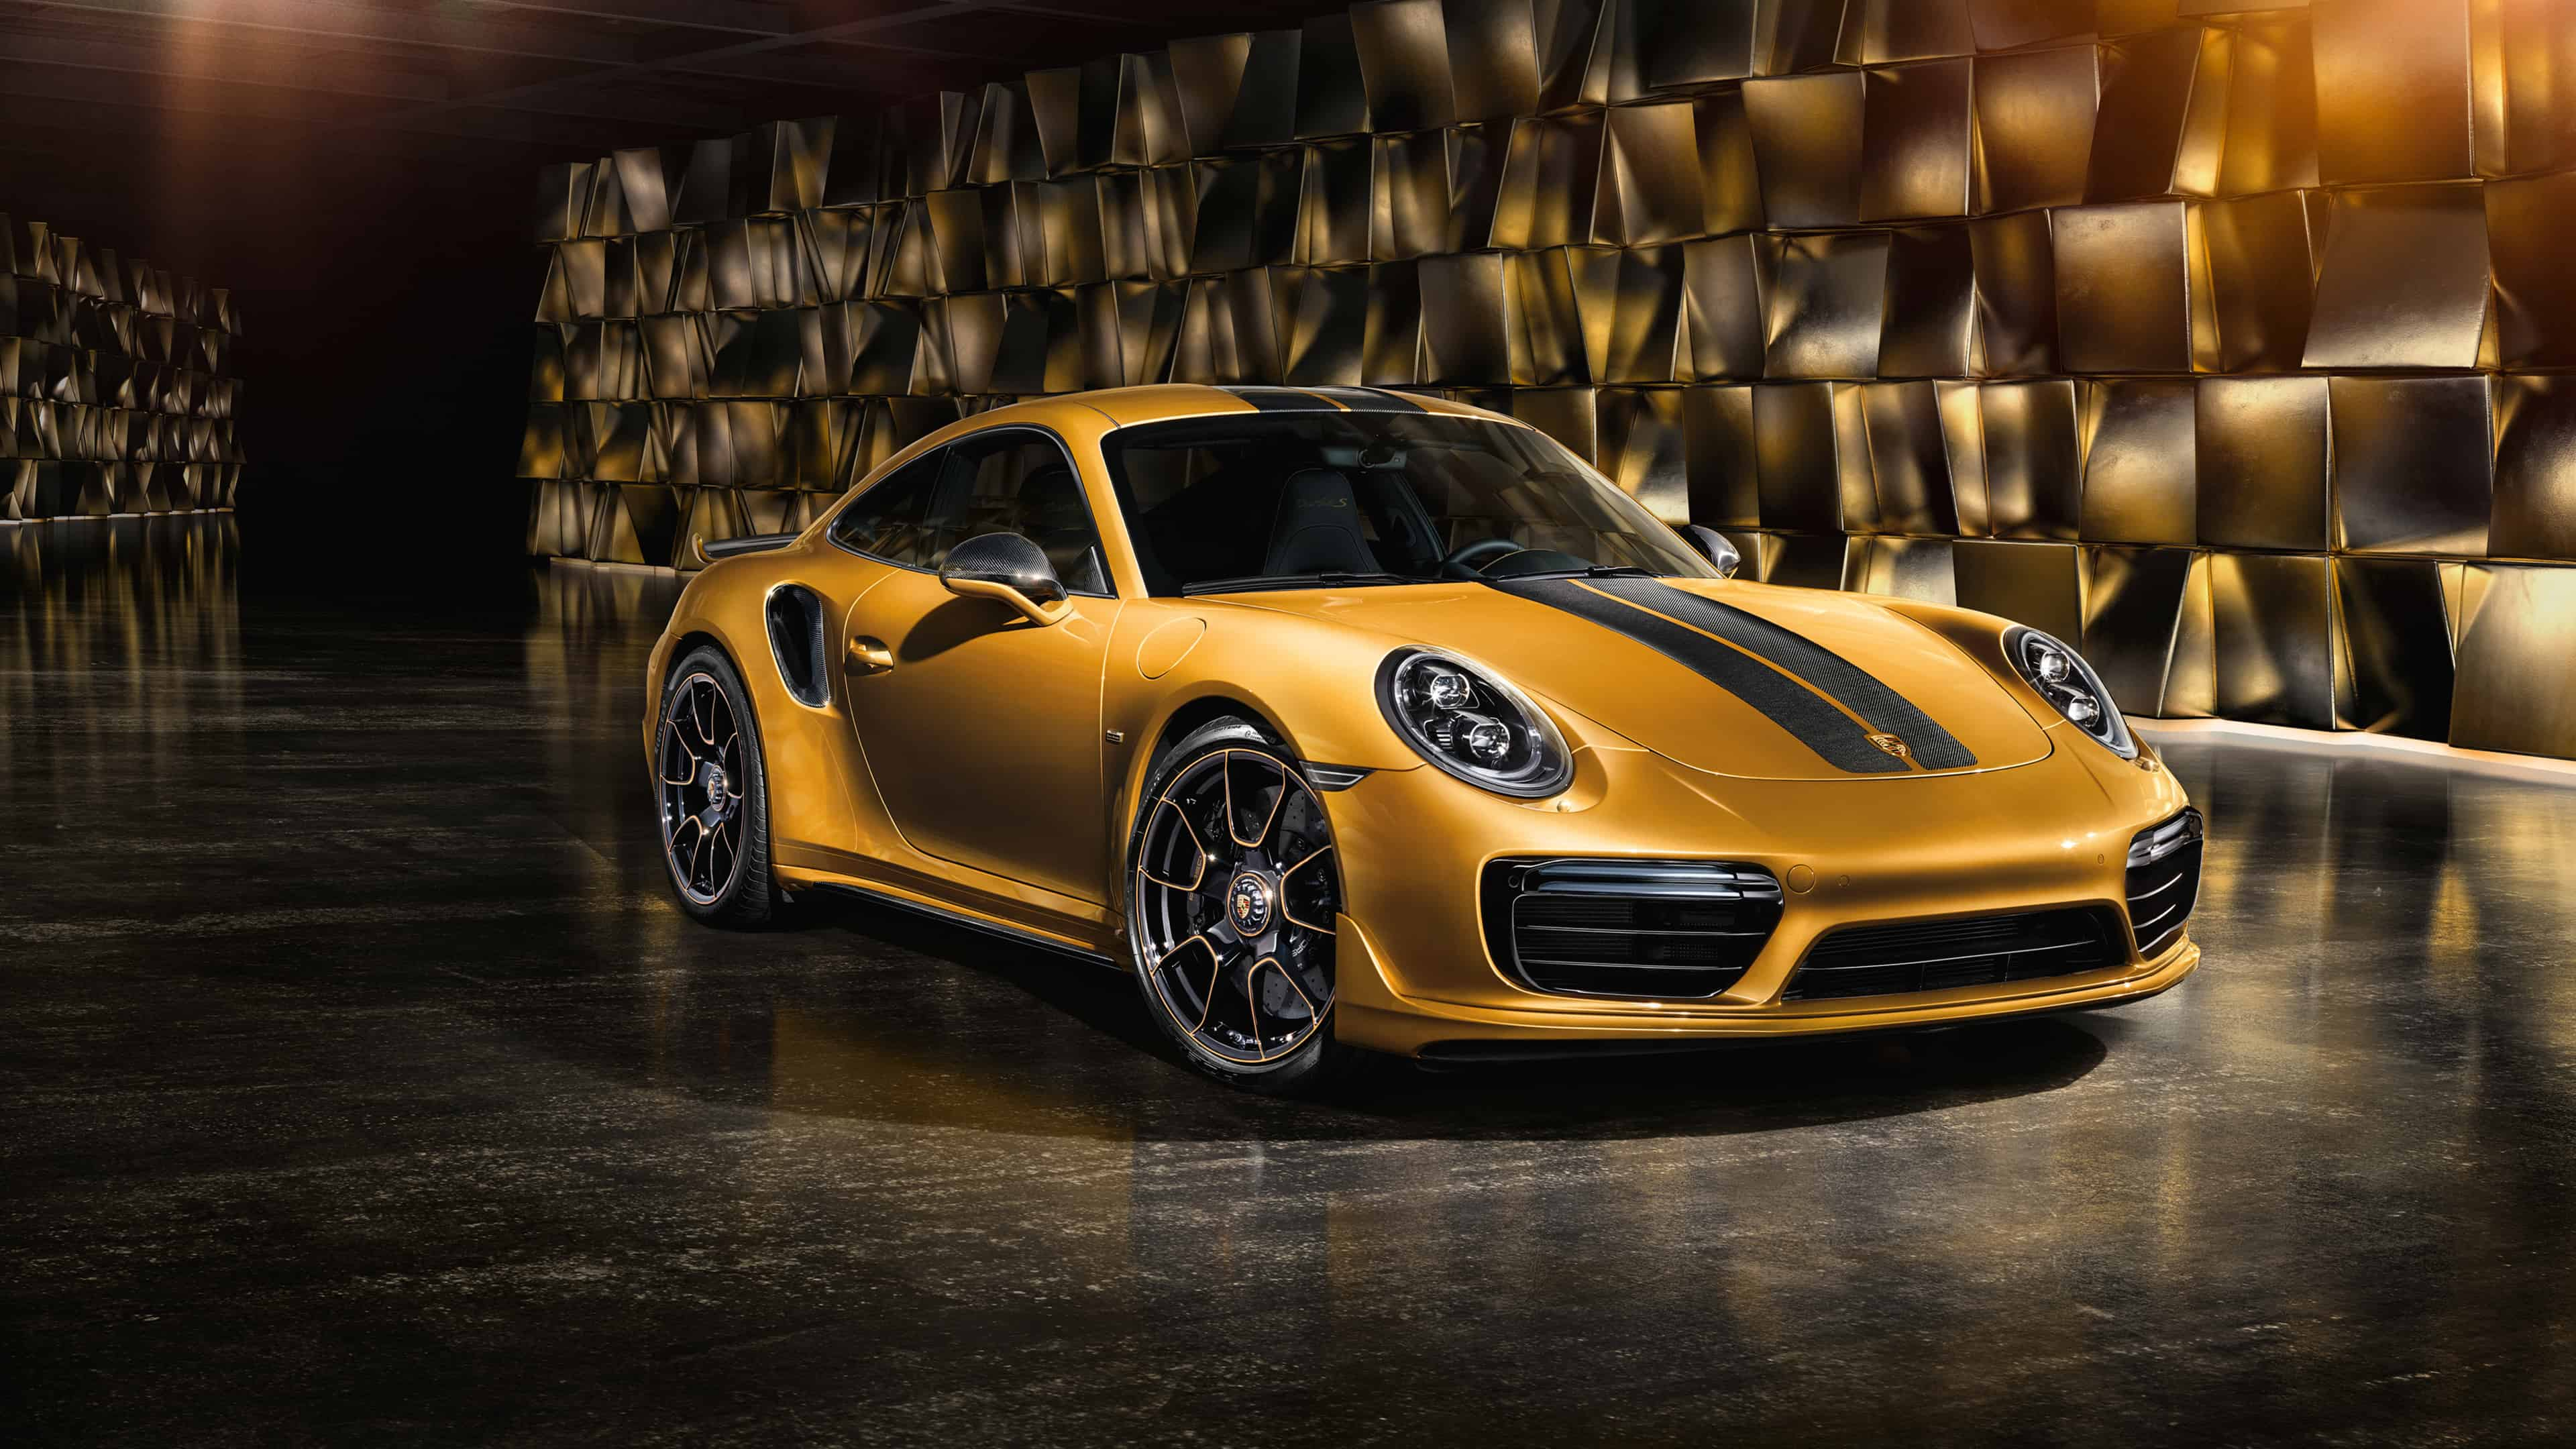 Porsche 911 Turbo S Wallpapers Top Free Porsche 911 Turbo S Backgrounds Wallpaperaccess